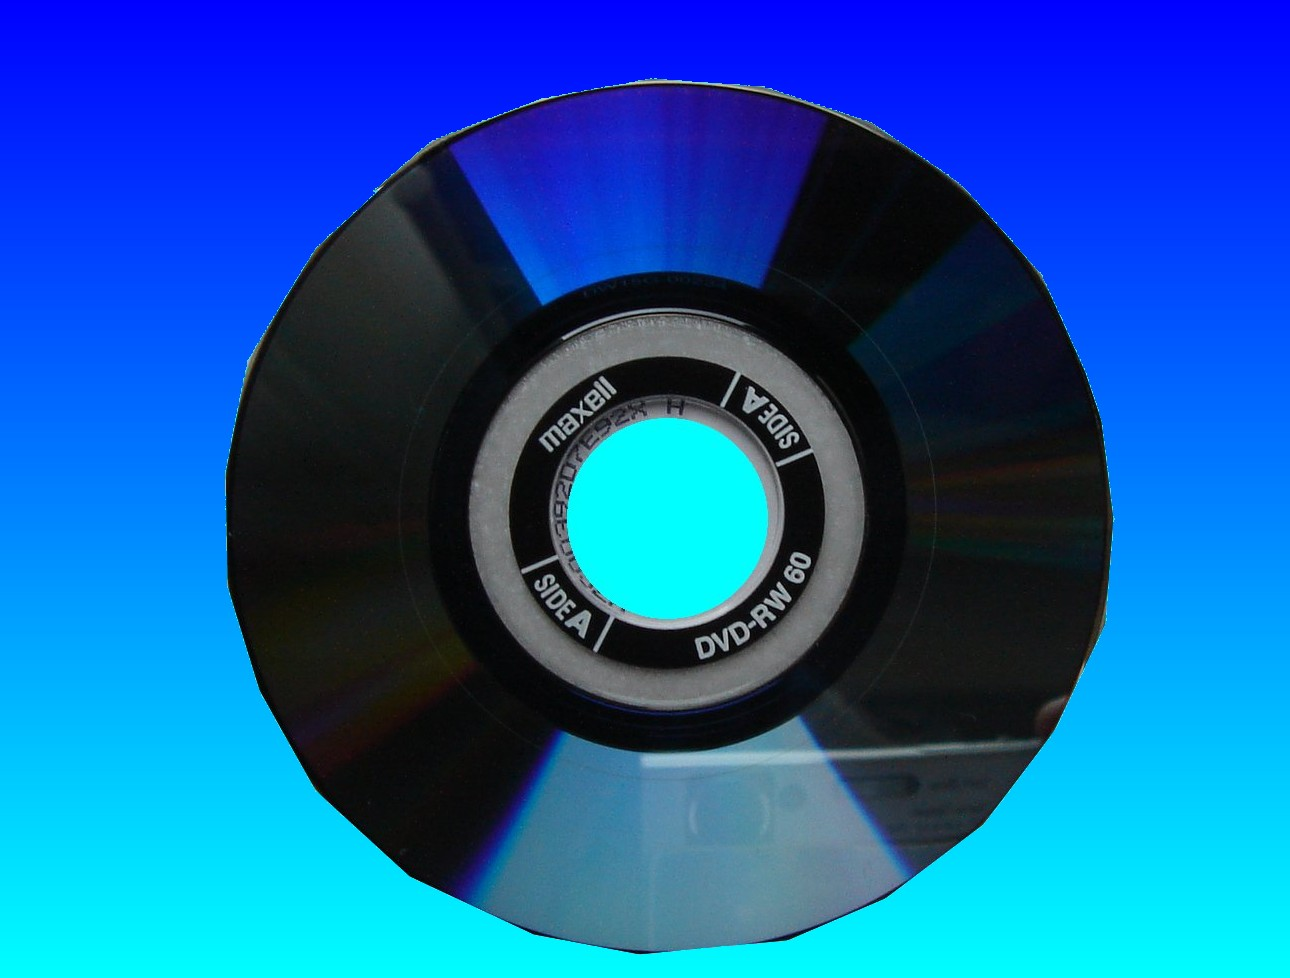 DVD showing empty when placed in camcorder or that the disc may be dirty.